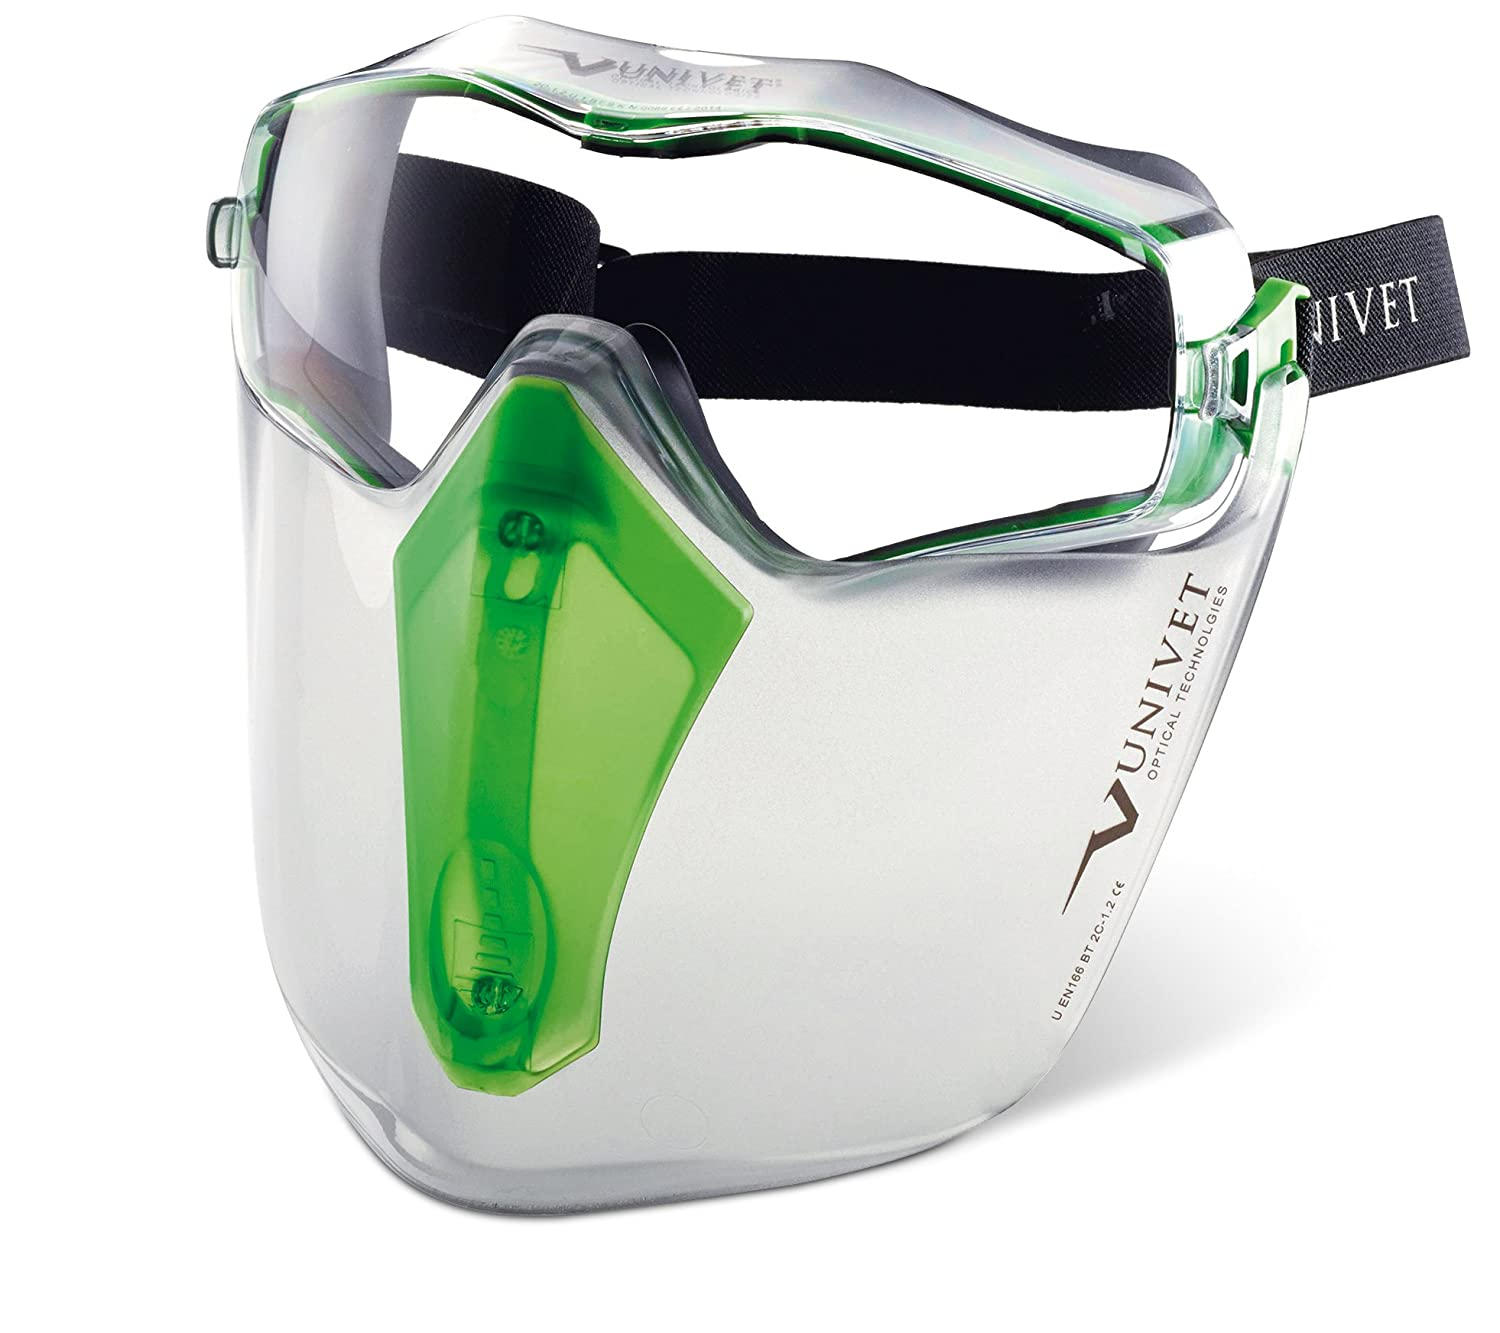 Univet 6X3 Next Generation Goggle & Protective Face Shield Univet Optical Technologies